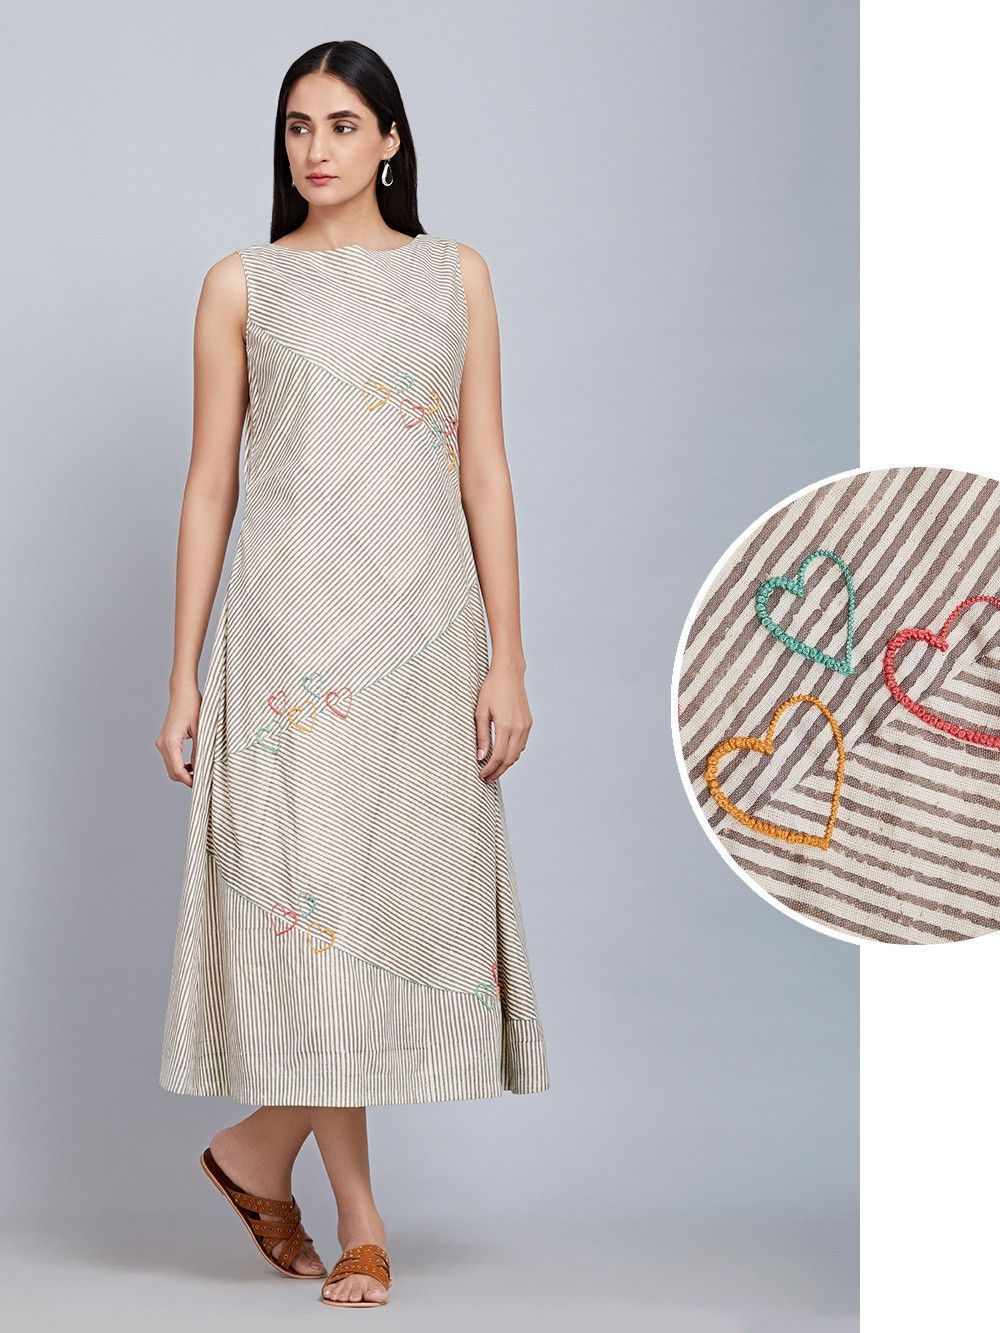 Buy Off White Striped Cotton Sleeveless Dress online at Theloom ... e57aeefd51